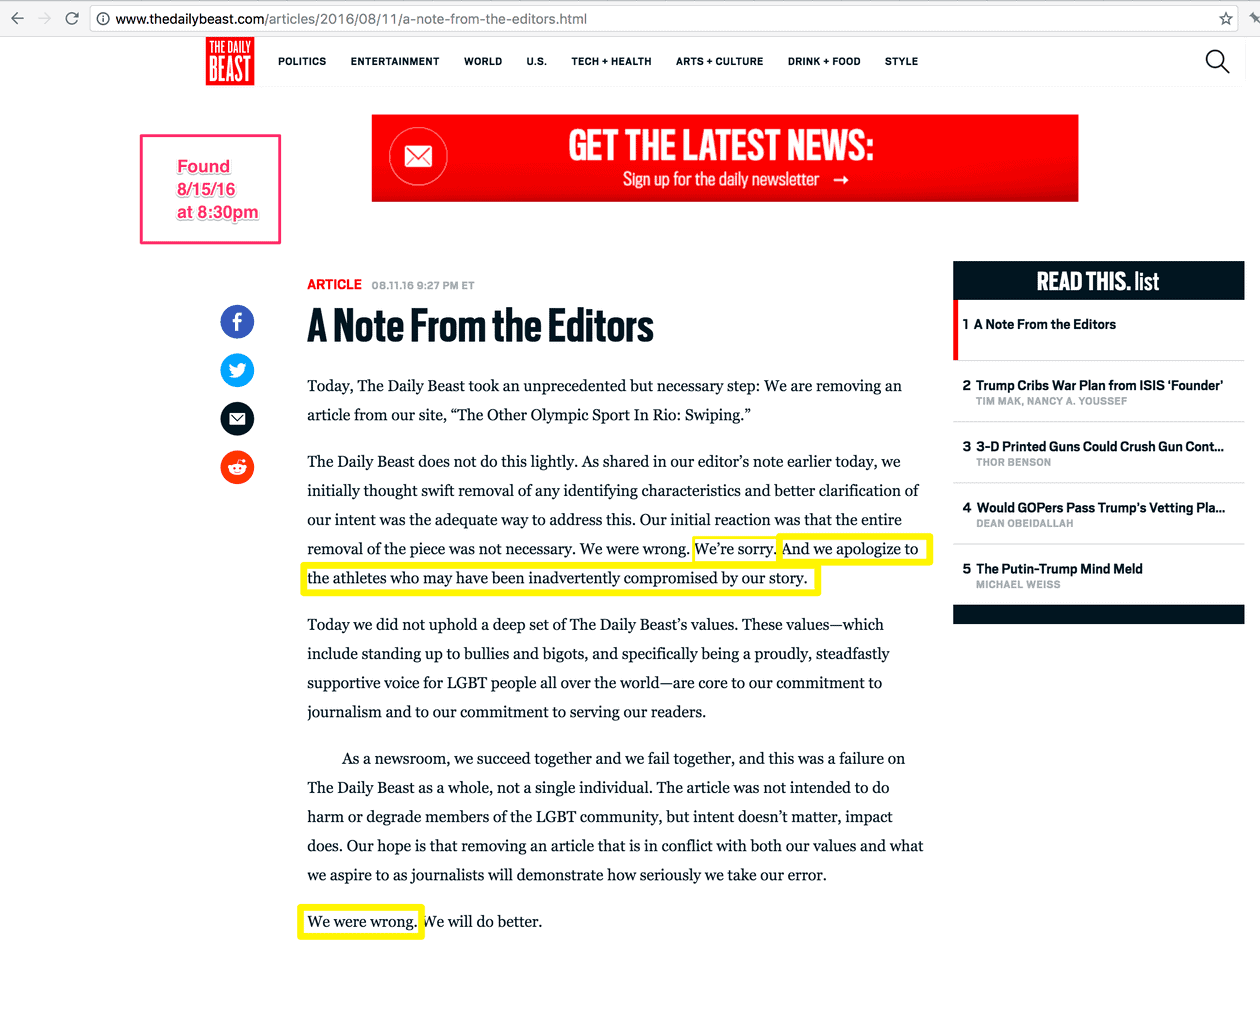 thiel outing daily beast apology